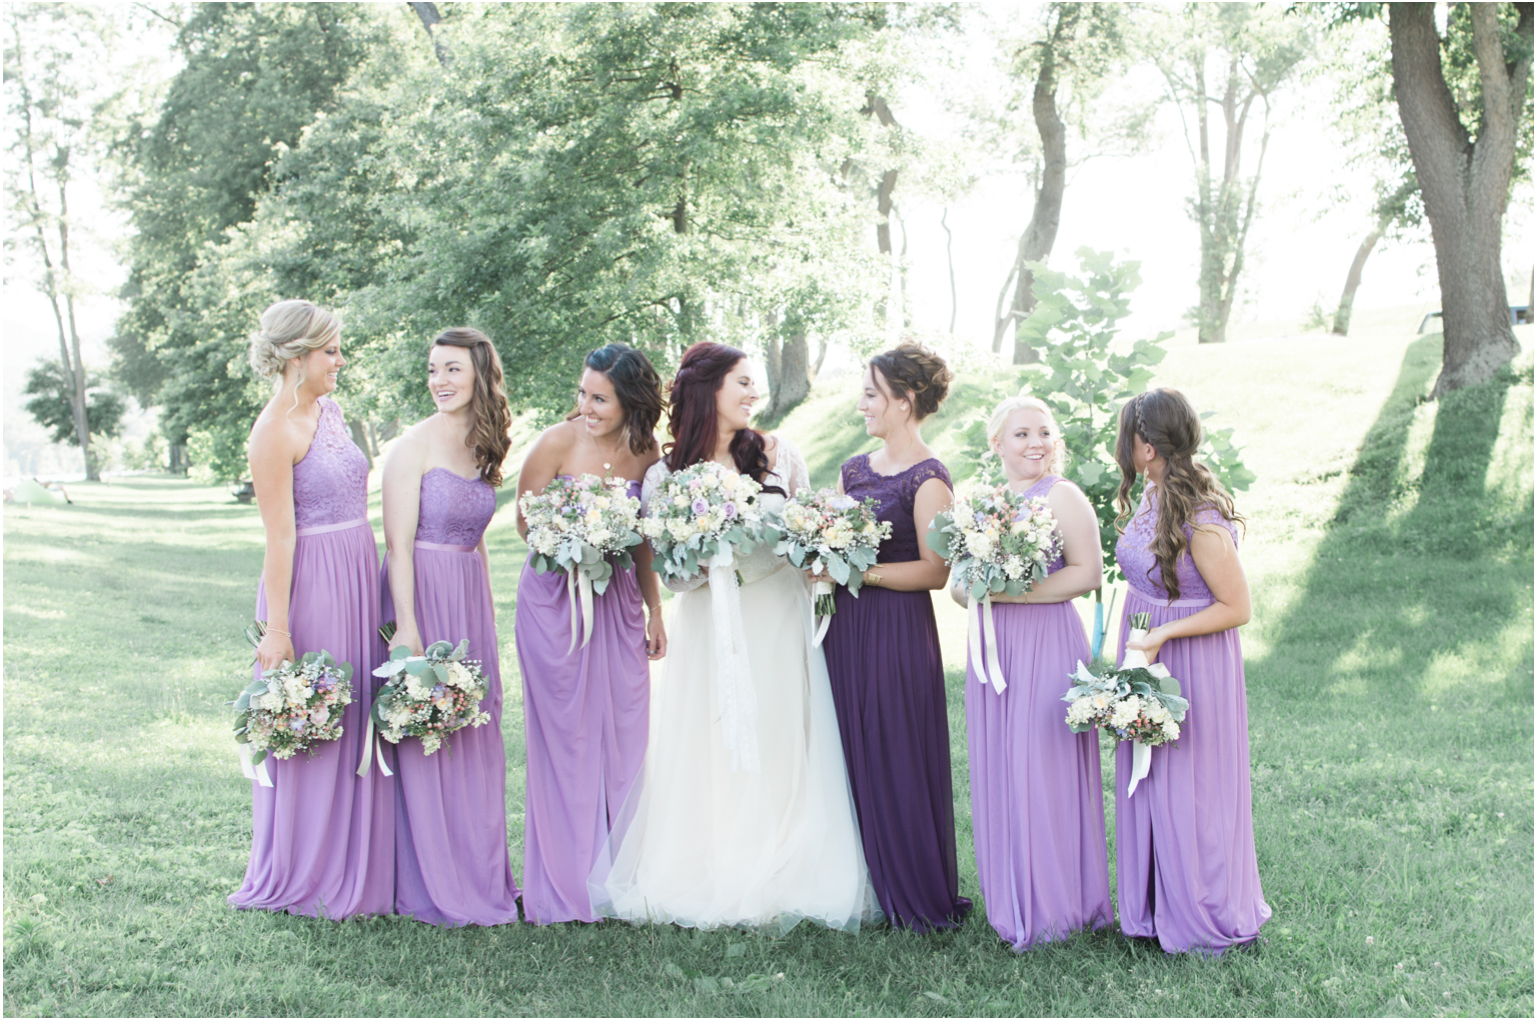 Married WIlliamsport PA Wedding bridal party bridesmaids happy